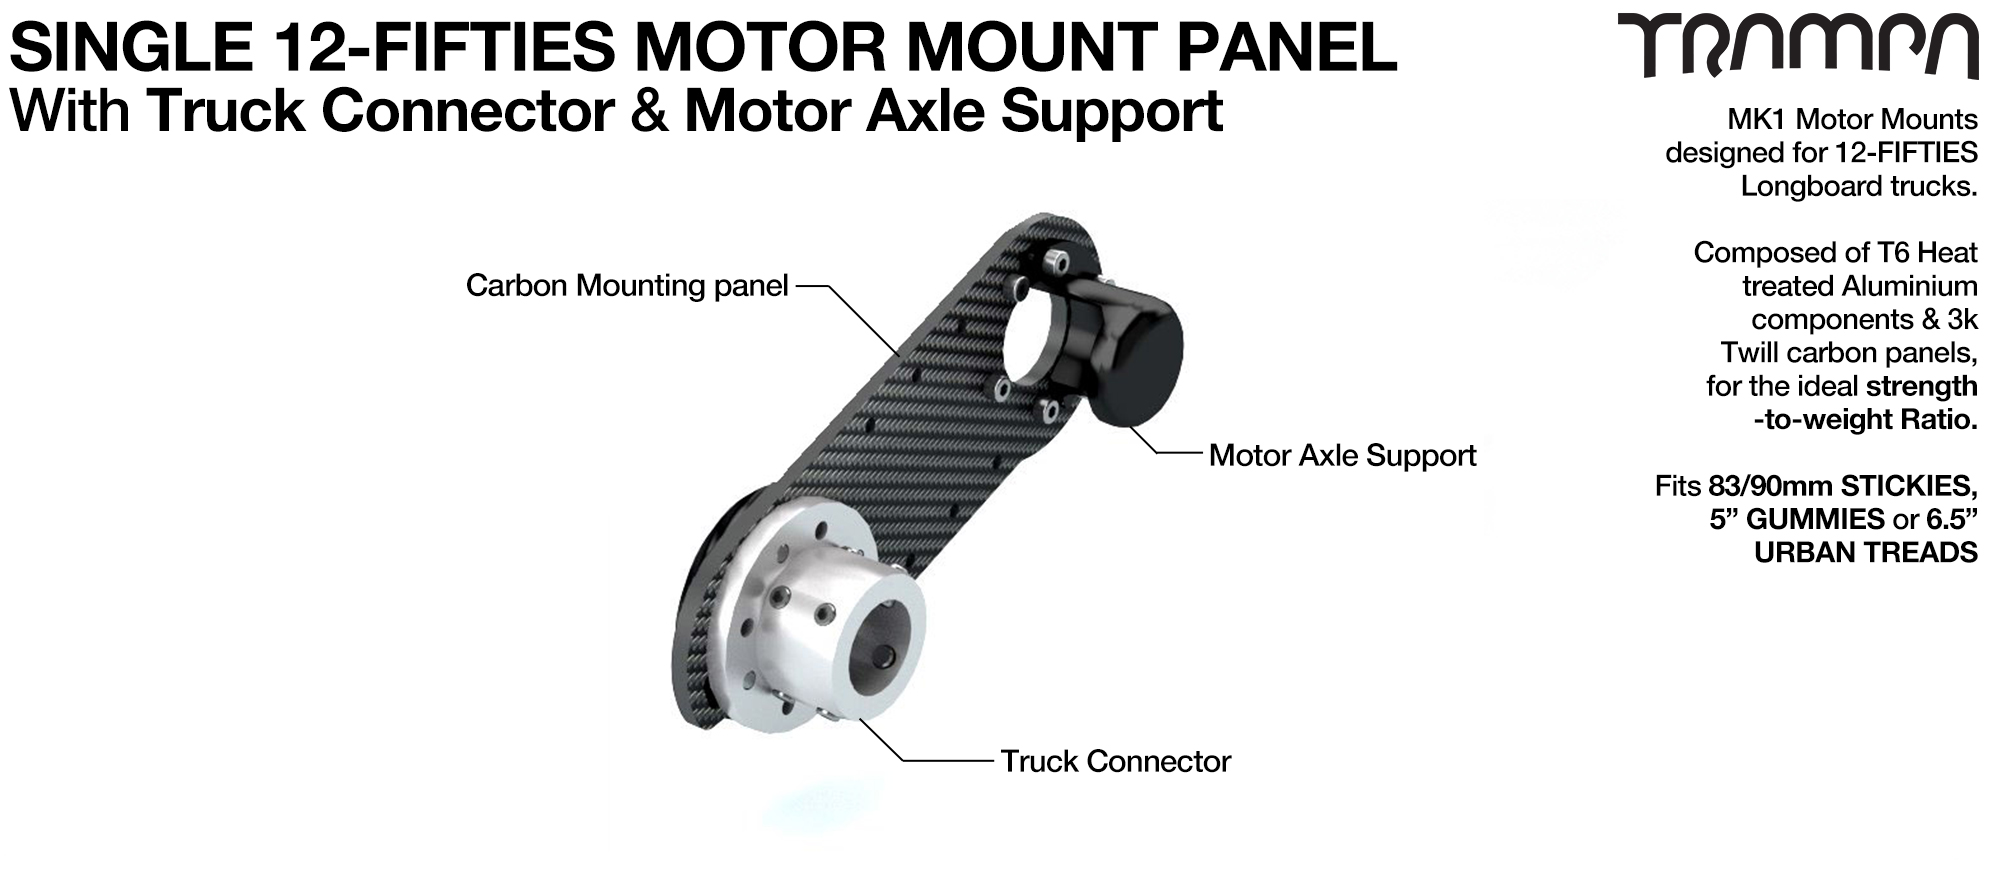 12Fifties Extra wide Longboard truck Motor Mount Connector & Carbon Panel with Axle support